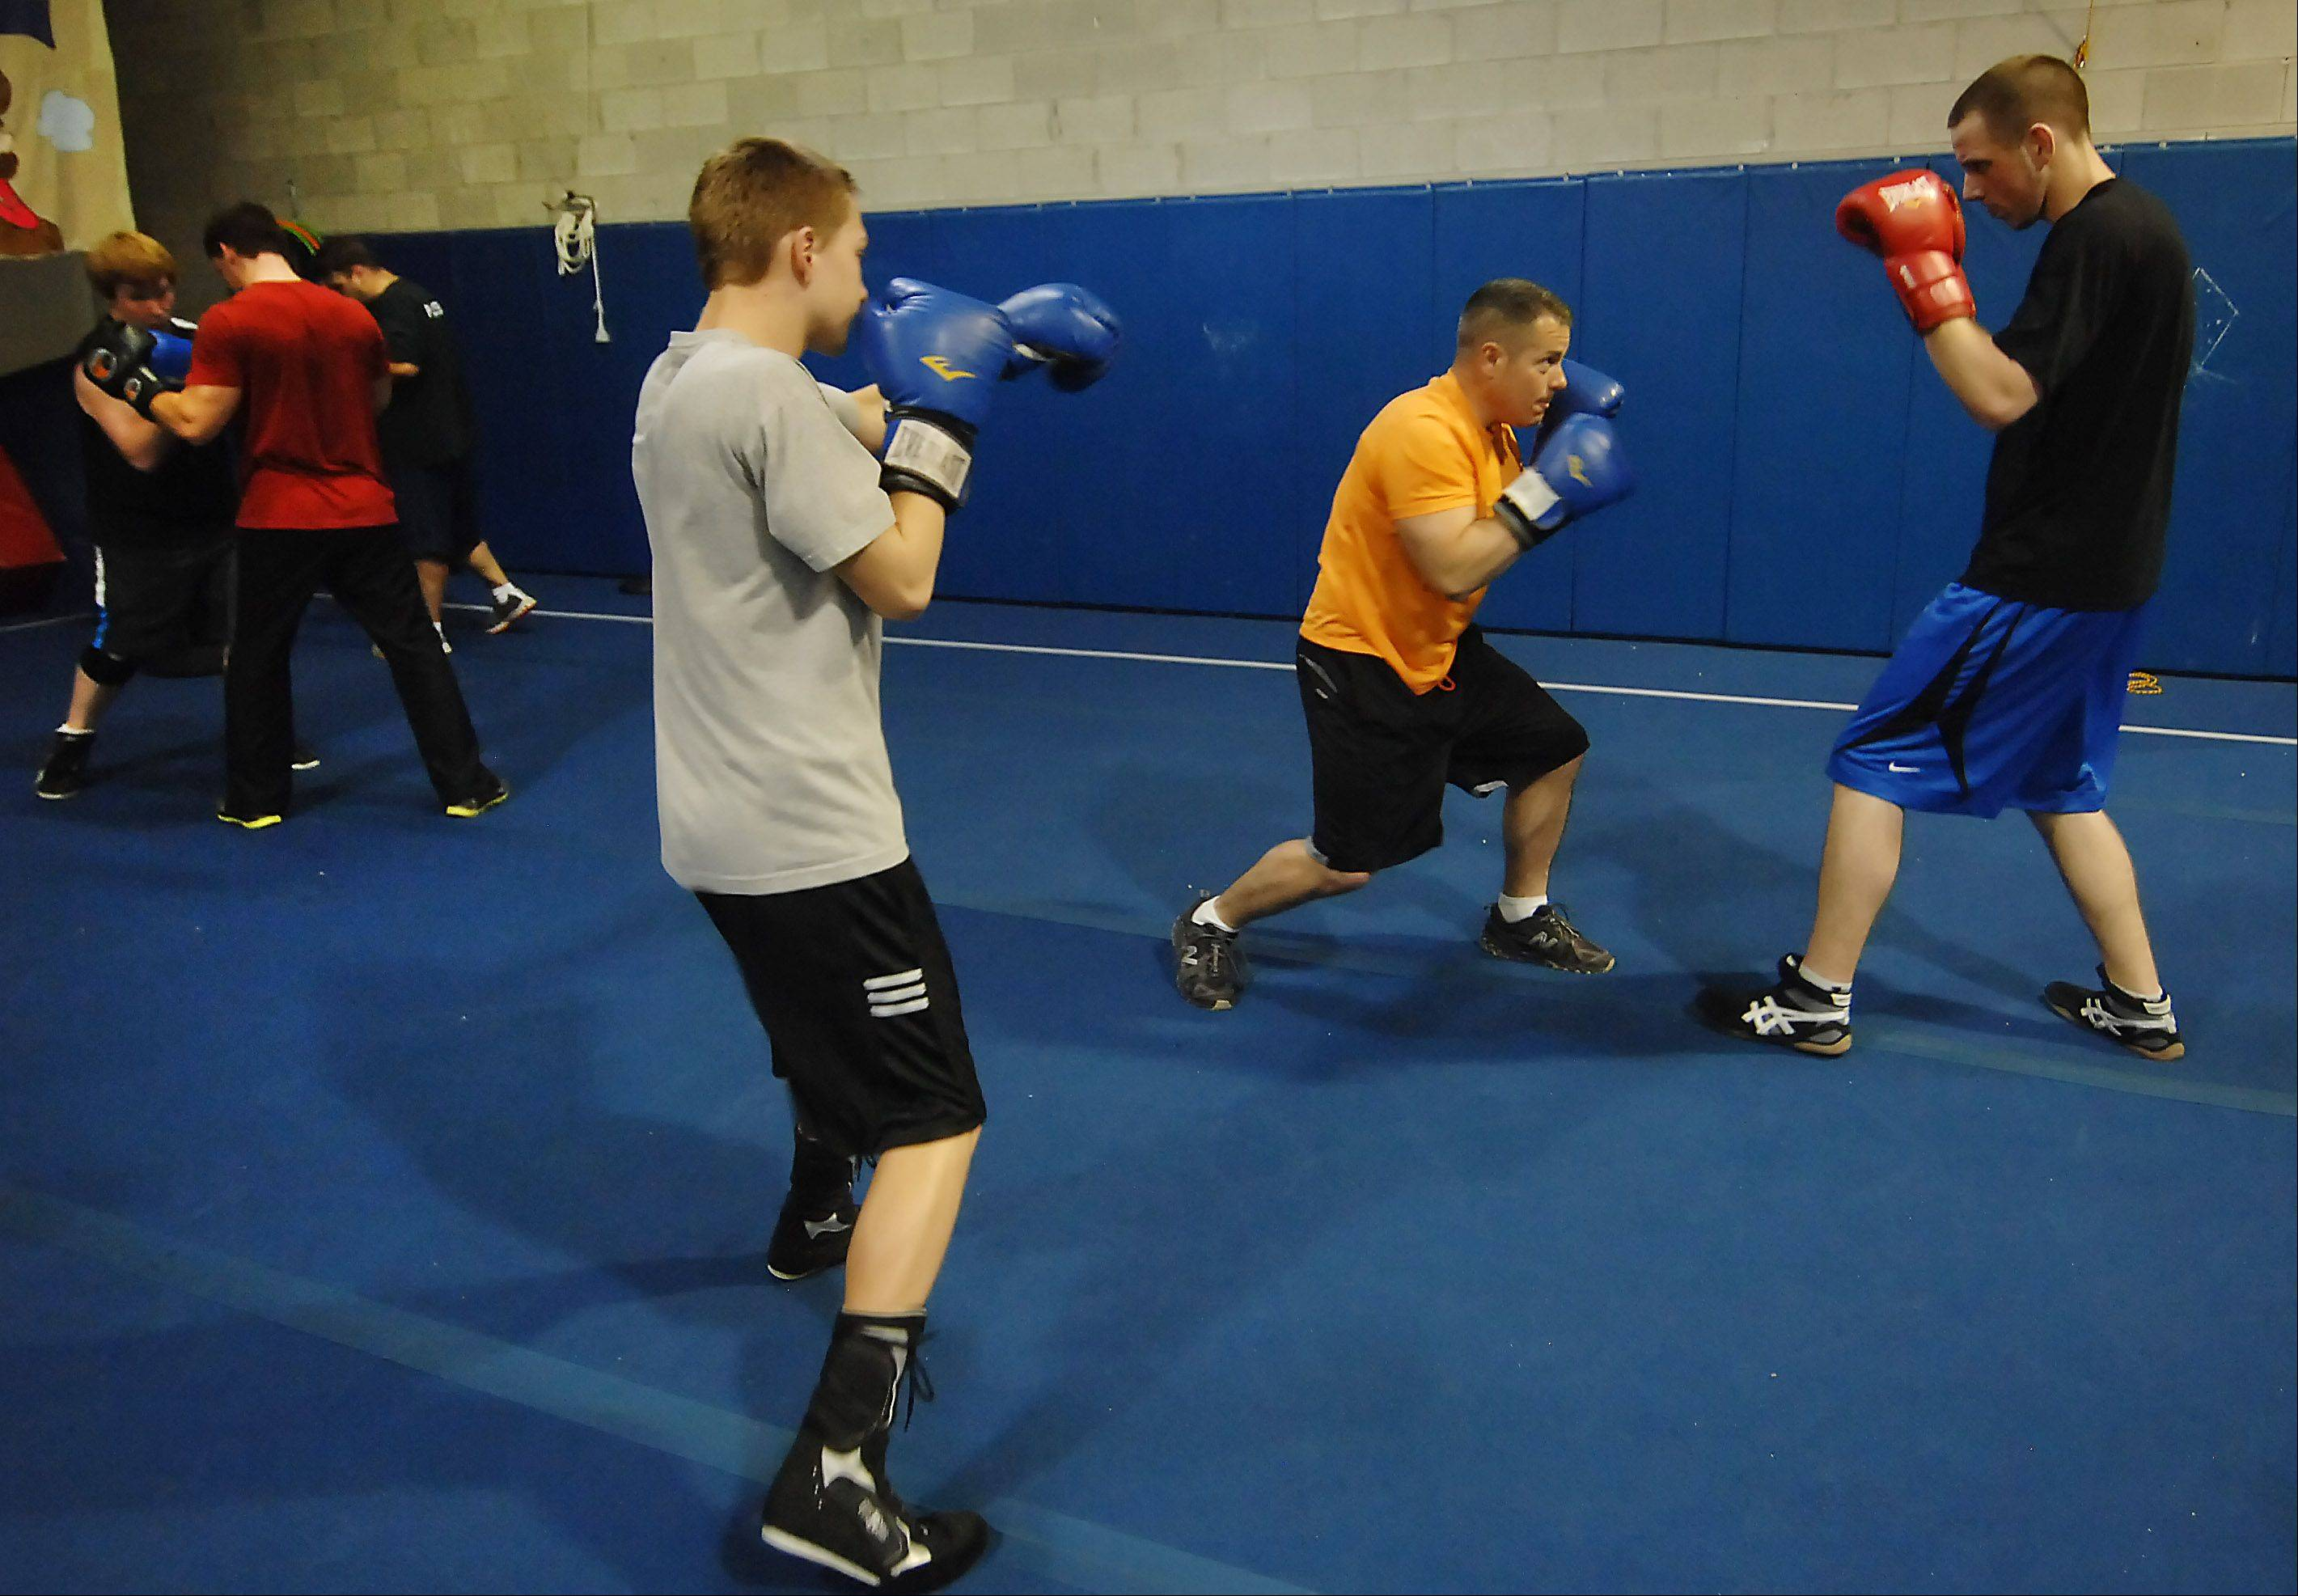 Paul Jonas, in the orange shirt, is launching Poundit Boxing Promotions by having a boxing exhibition this weekend. He coaches several people in the sport each night in Cary, including Jimmy Gustafson, 16, left, of Lake in the Hills and Tanner Frese, 19, of Cary.